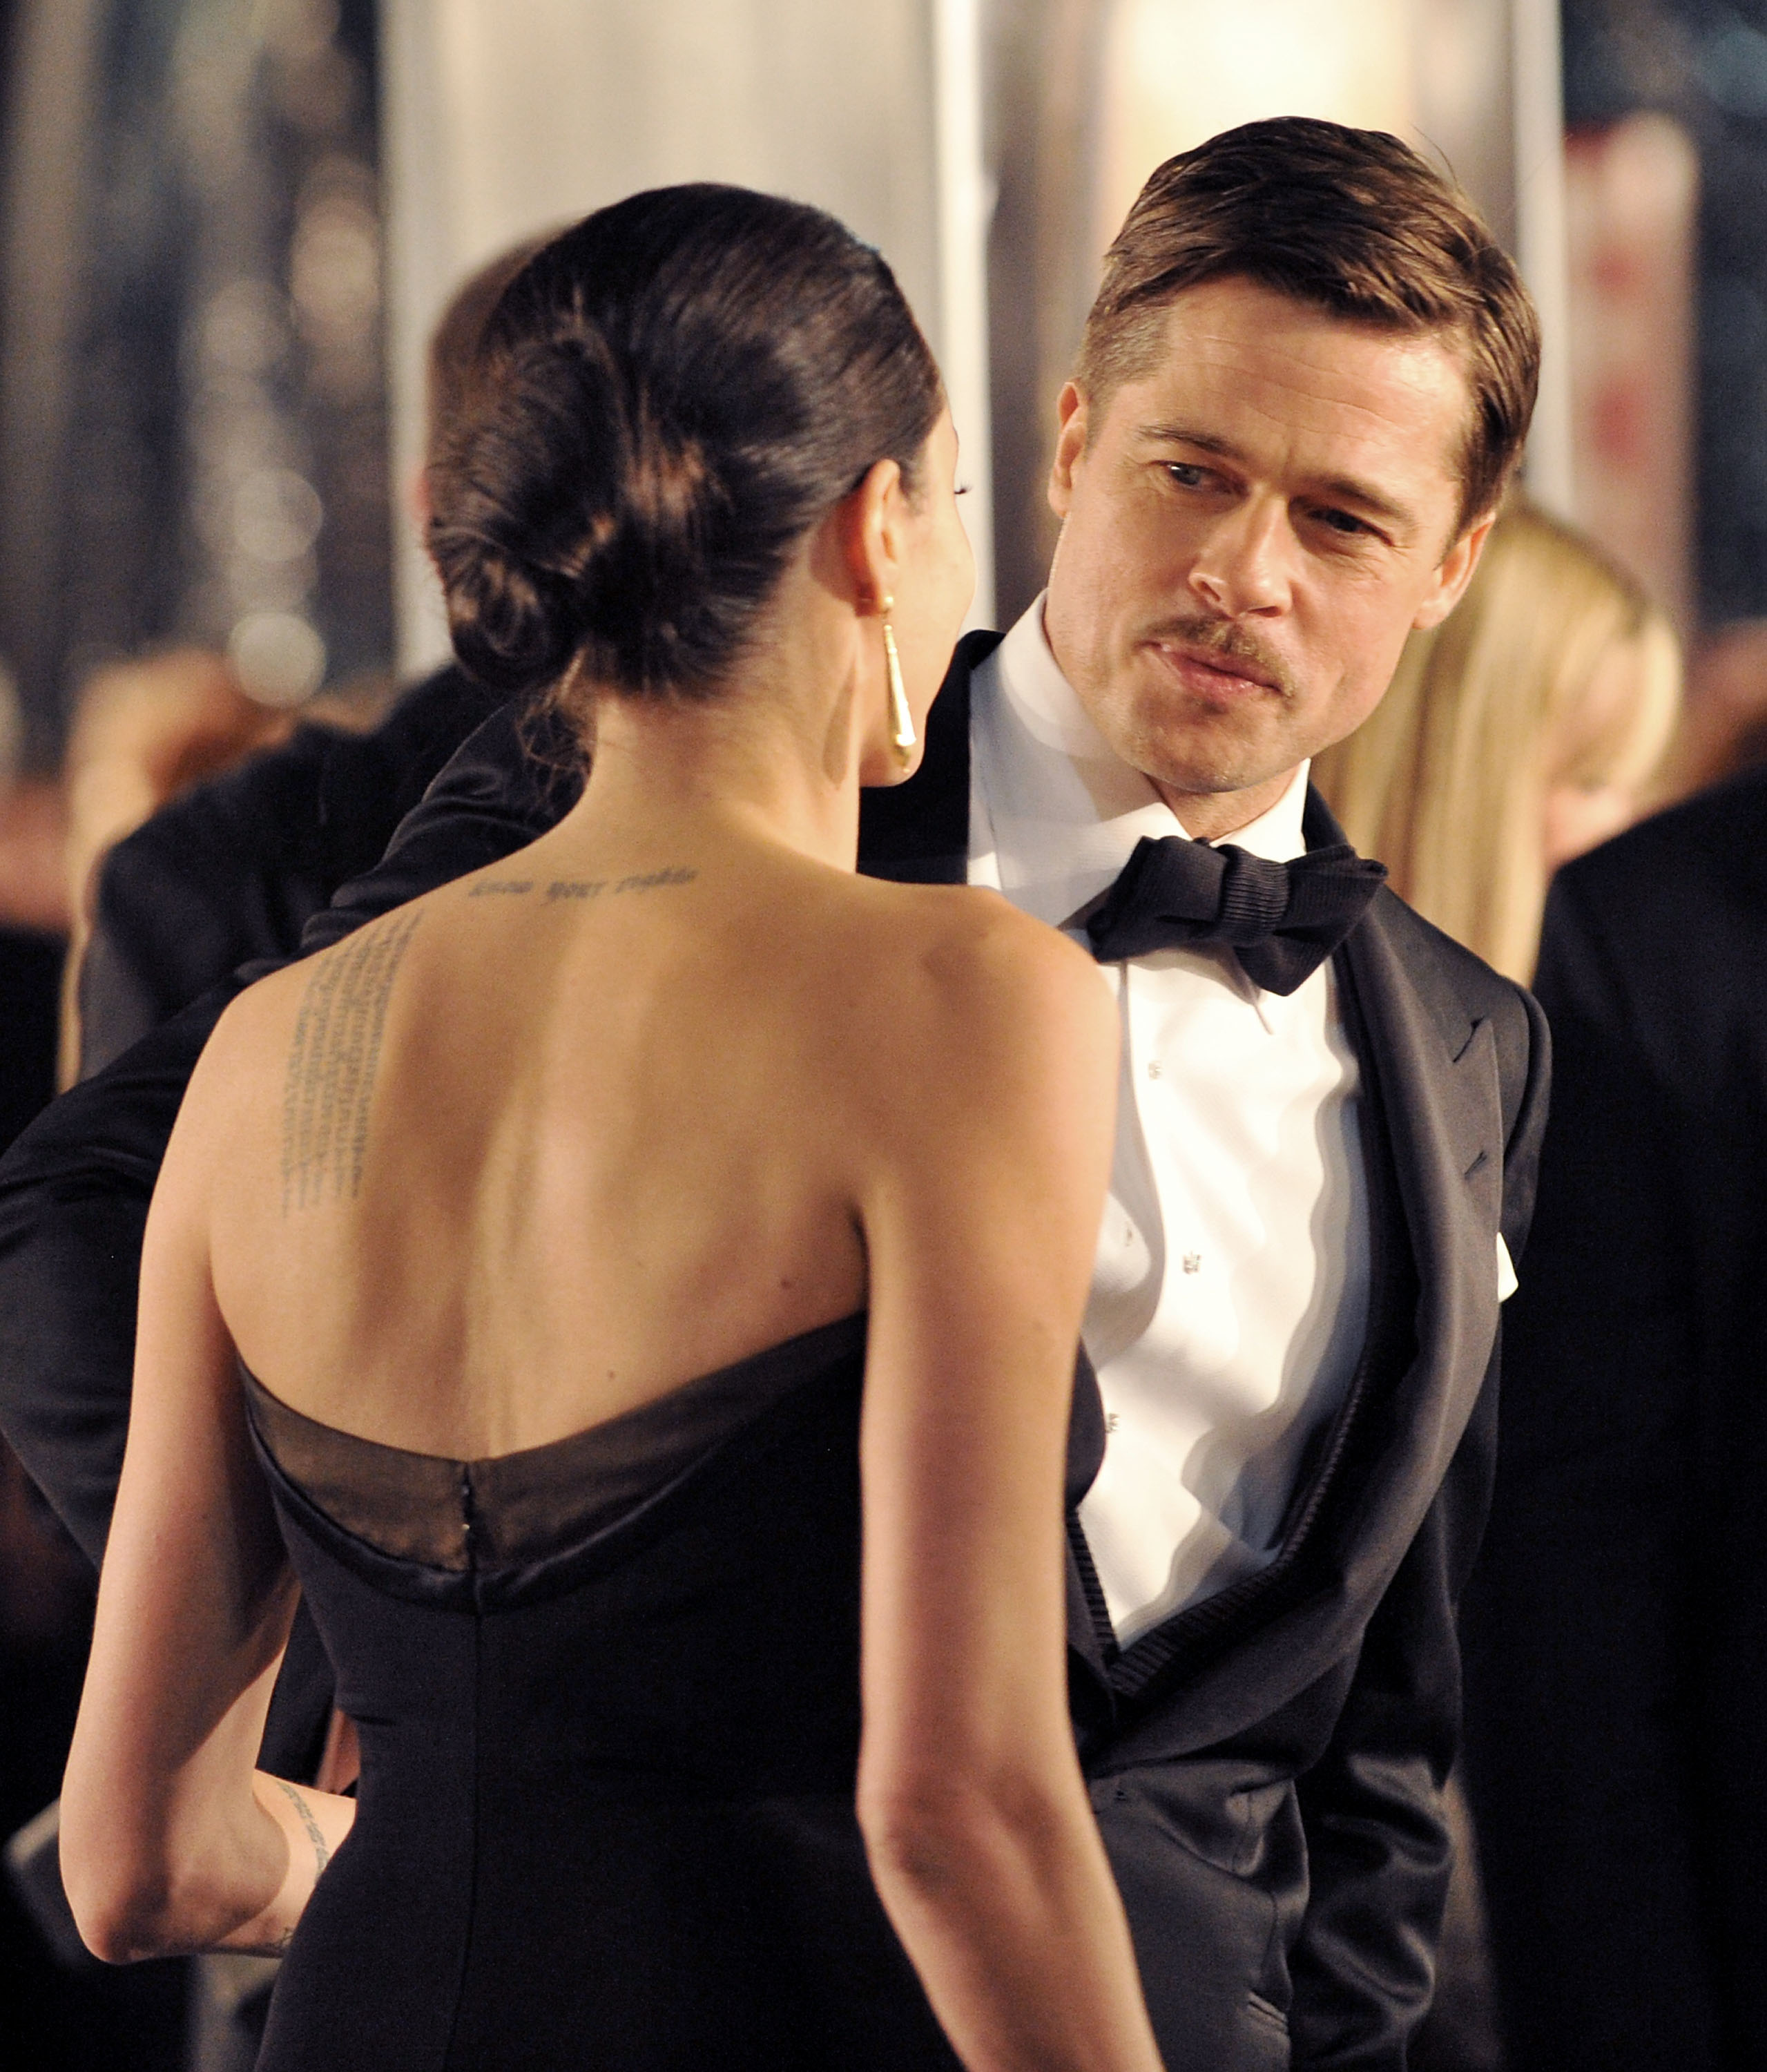 Brad Pitt stole a glimpse of Angelina Jolie at his December 2008 premiere of The Curious Case of Benjamin Button.